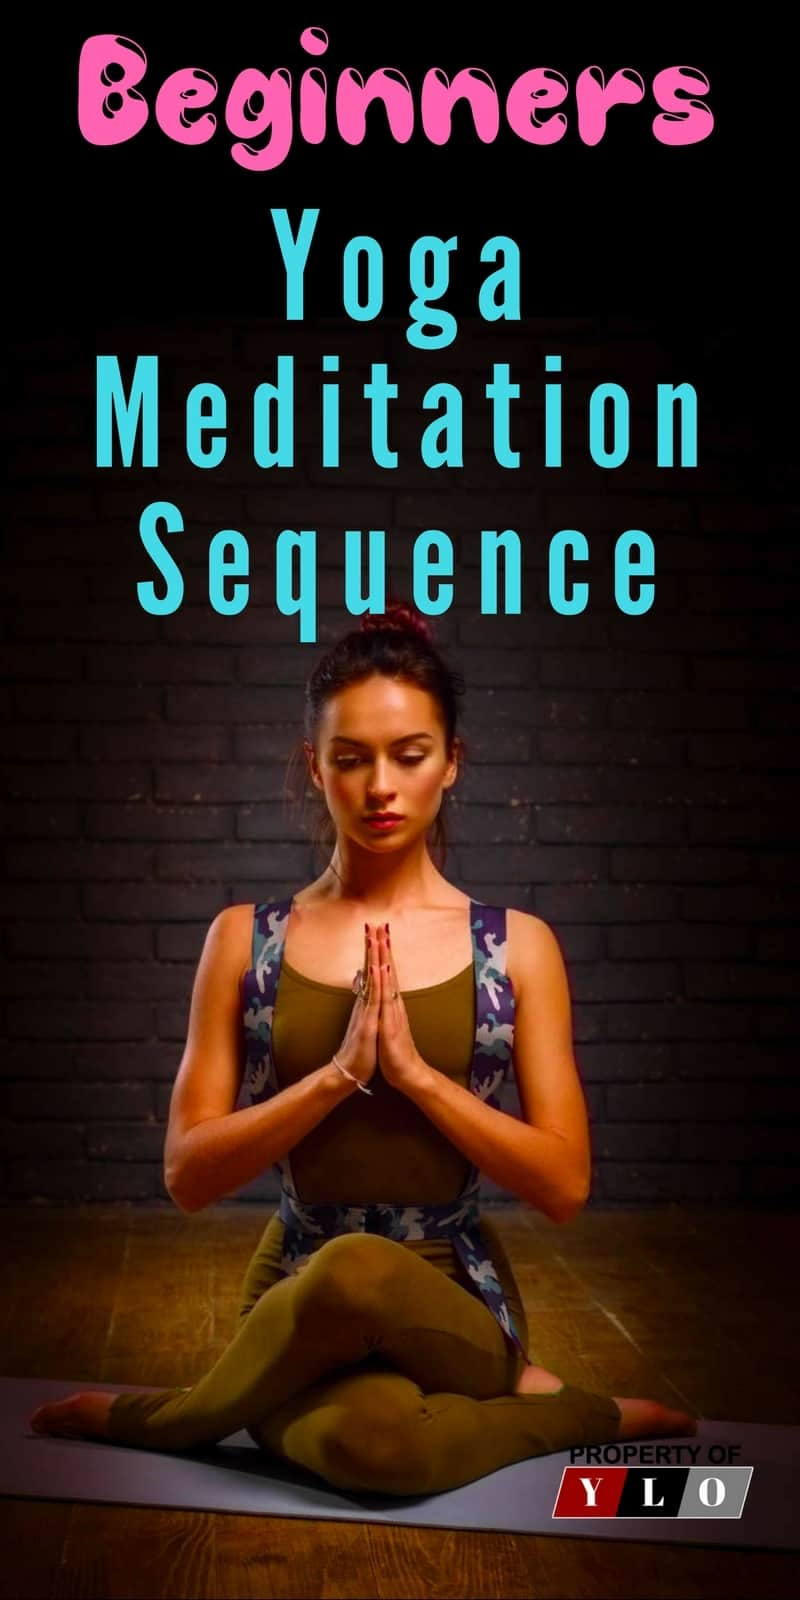 If you are in need of calmness within your life, have you ever tried meditation? If not, the Beginners Yoga Meditation Sequence would be a great place to start. This works great for yoga meditation, yoga, yoga poses, yoga benefits, yoga positions, yoga for weight loss, yoga for beginners, yoga poses for beginners, yogi, Pilates, yoga workout, yoga workouts.